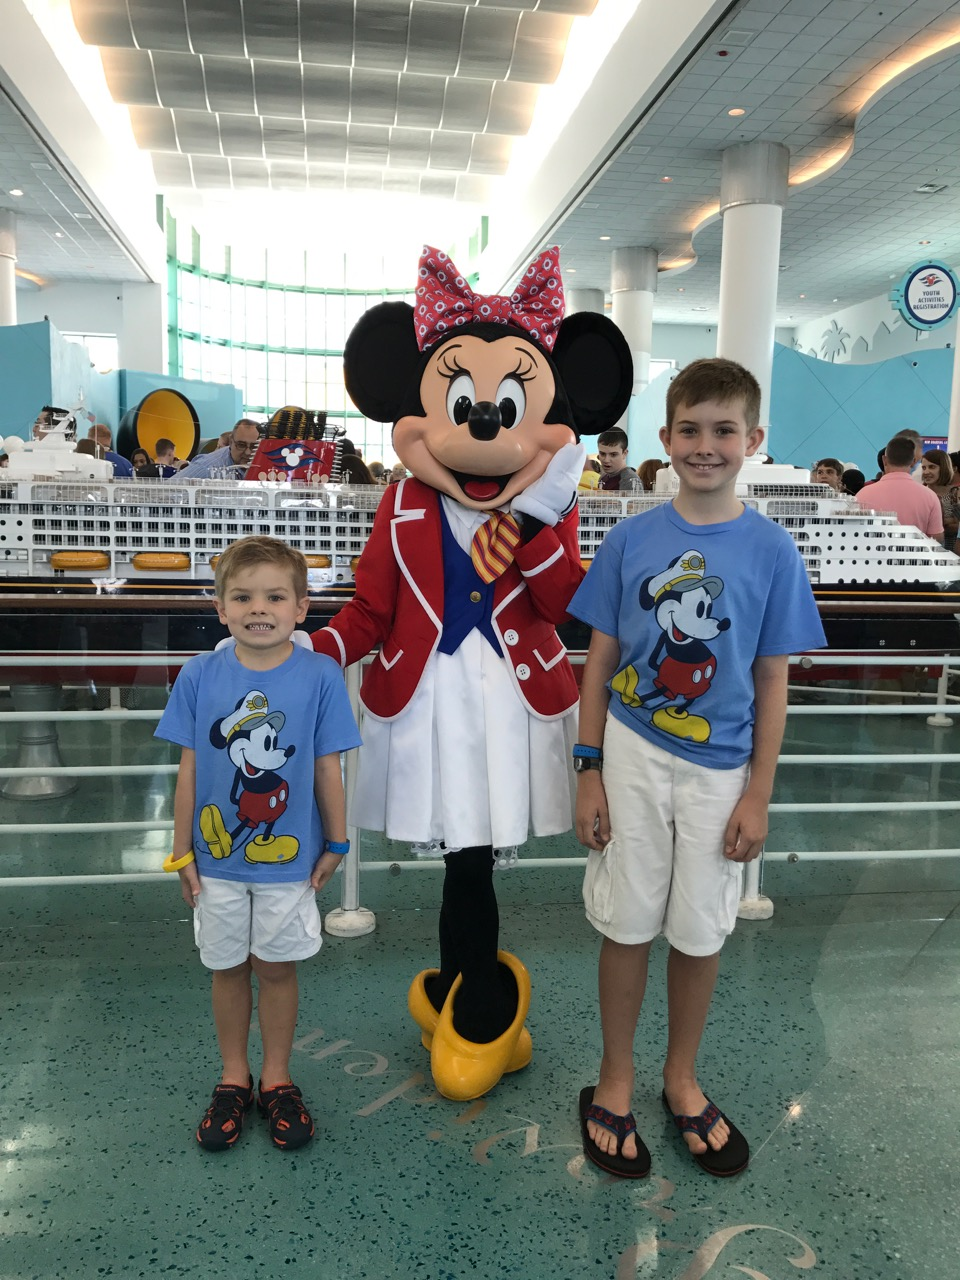 Minnie Mouse Port Canaveral Disney Fantasy